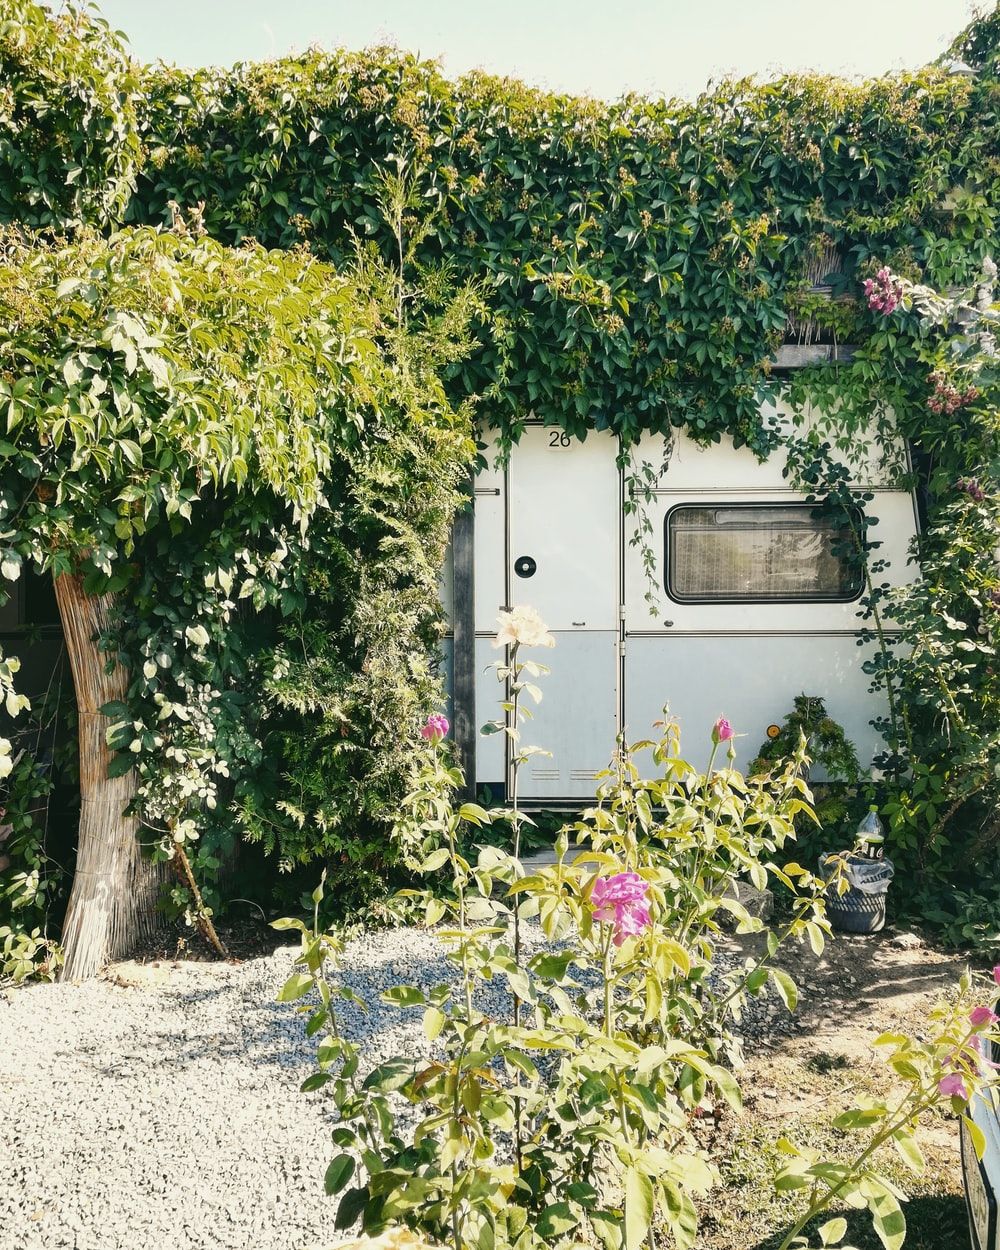 white trailer truck surrounded by green plants